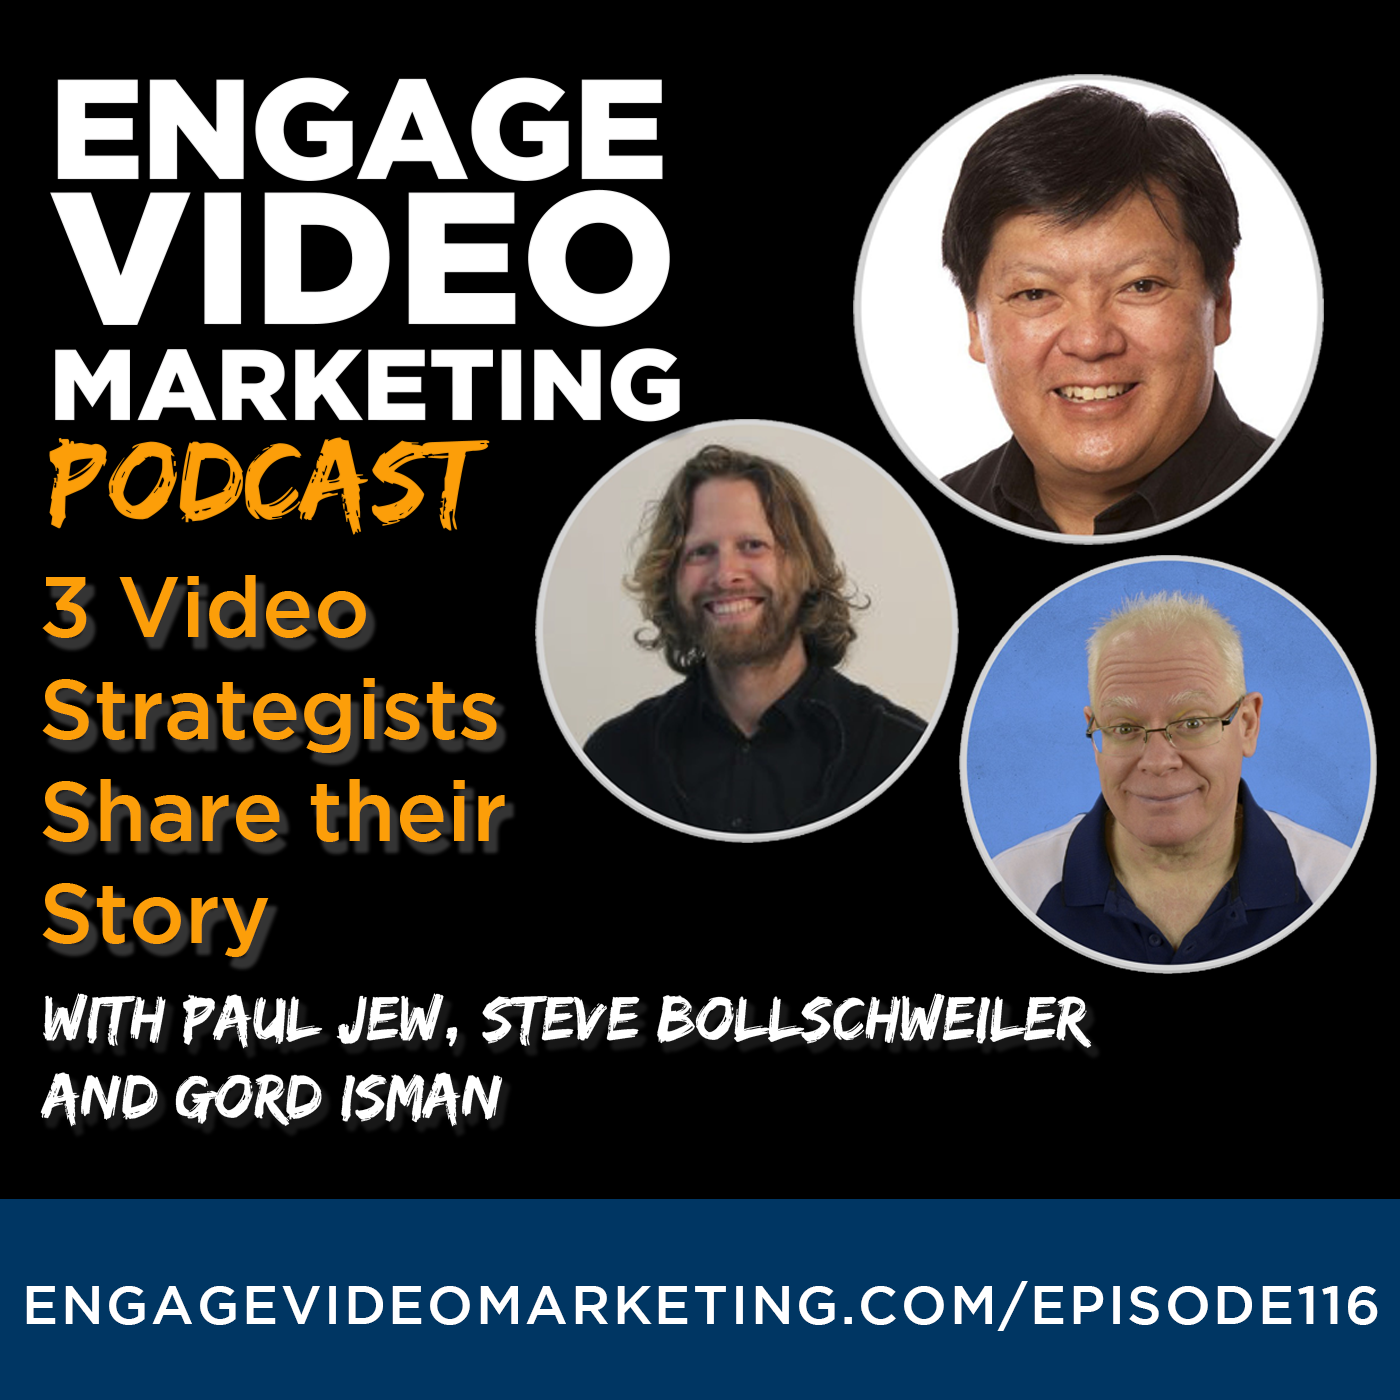 3 Video Strategists Share Their Story